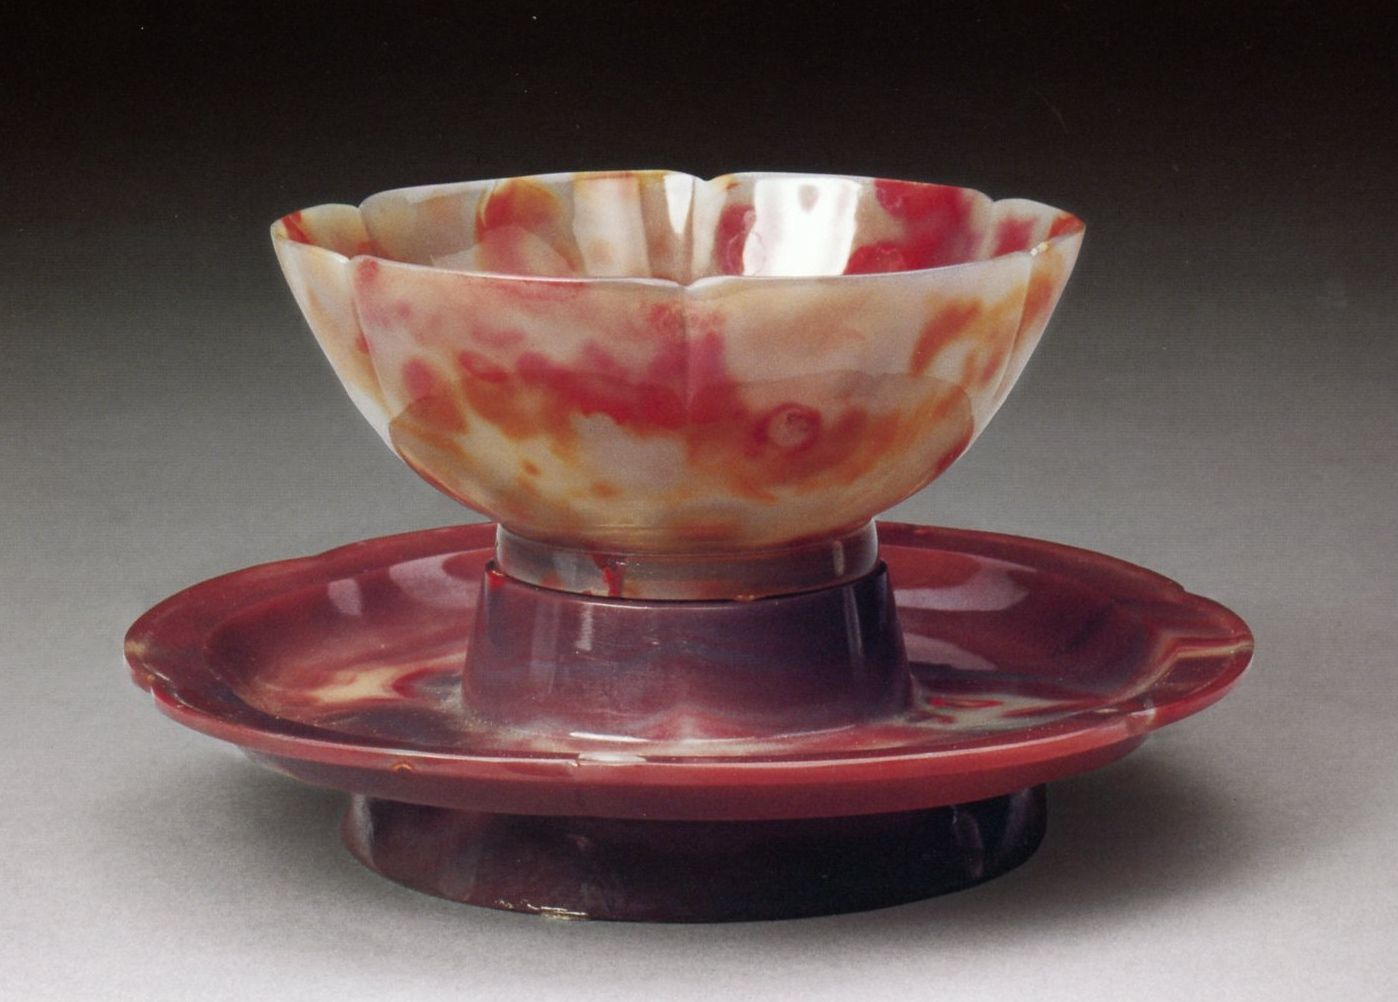 A cup and stem saucer base made from carved/polished red and cream-colored agate, Qianlong period (1736-1795 AD) Qing Dynasty. Overall Height: 8.5 cm; Cup Height: 4.7 cm; Diameter: 11.3 cm; Stem saucer Height: 2.7 cm. From the Forbidden City Palace collection.